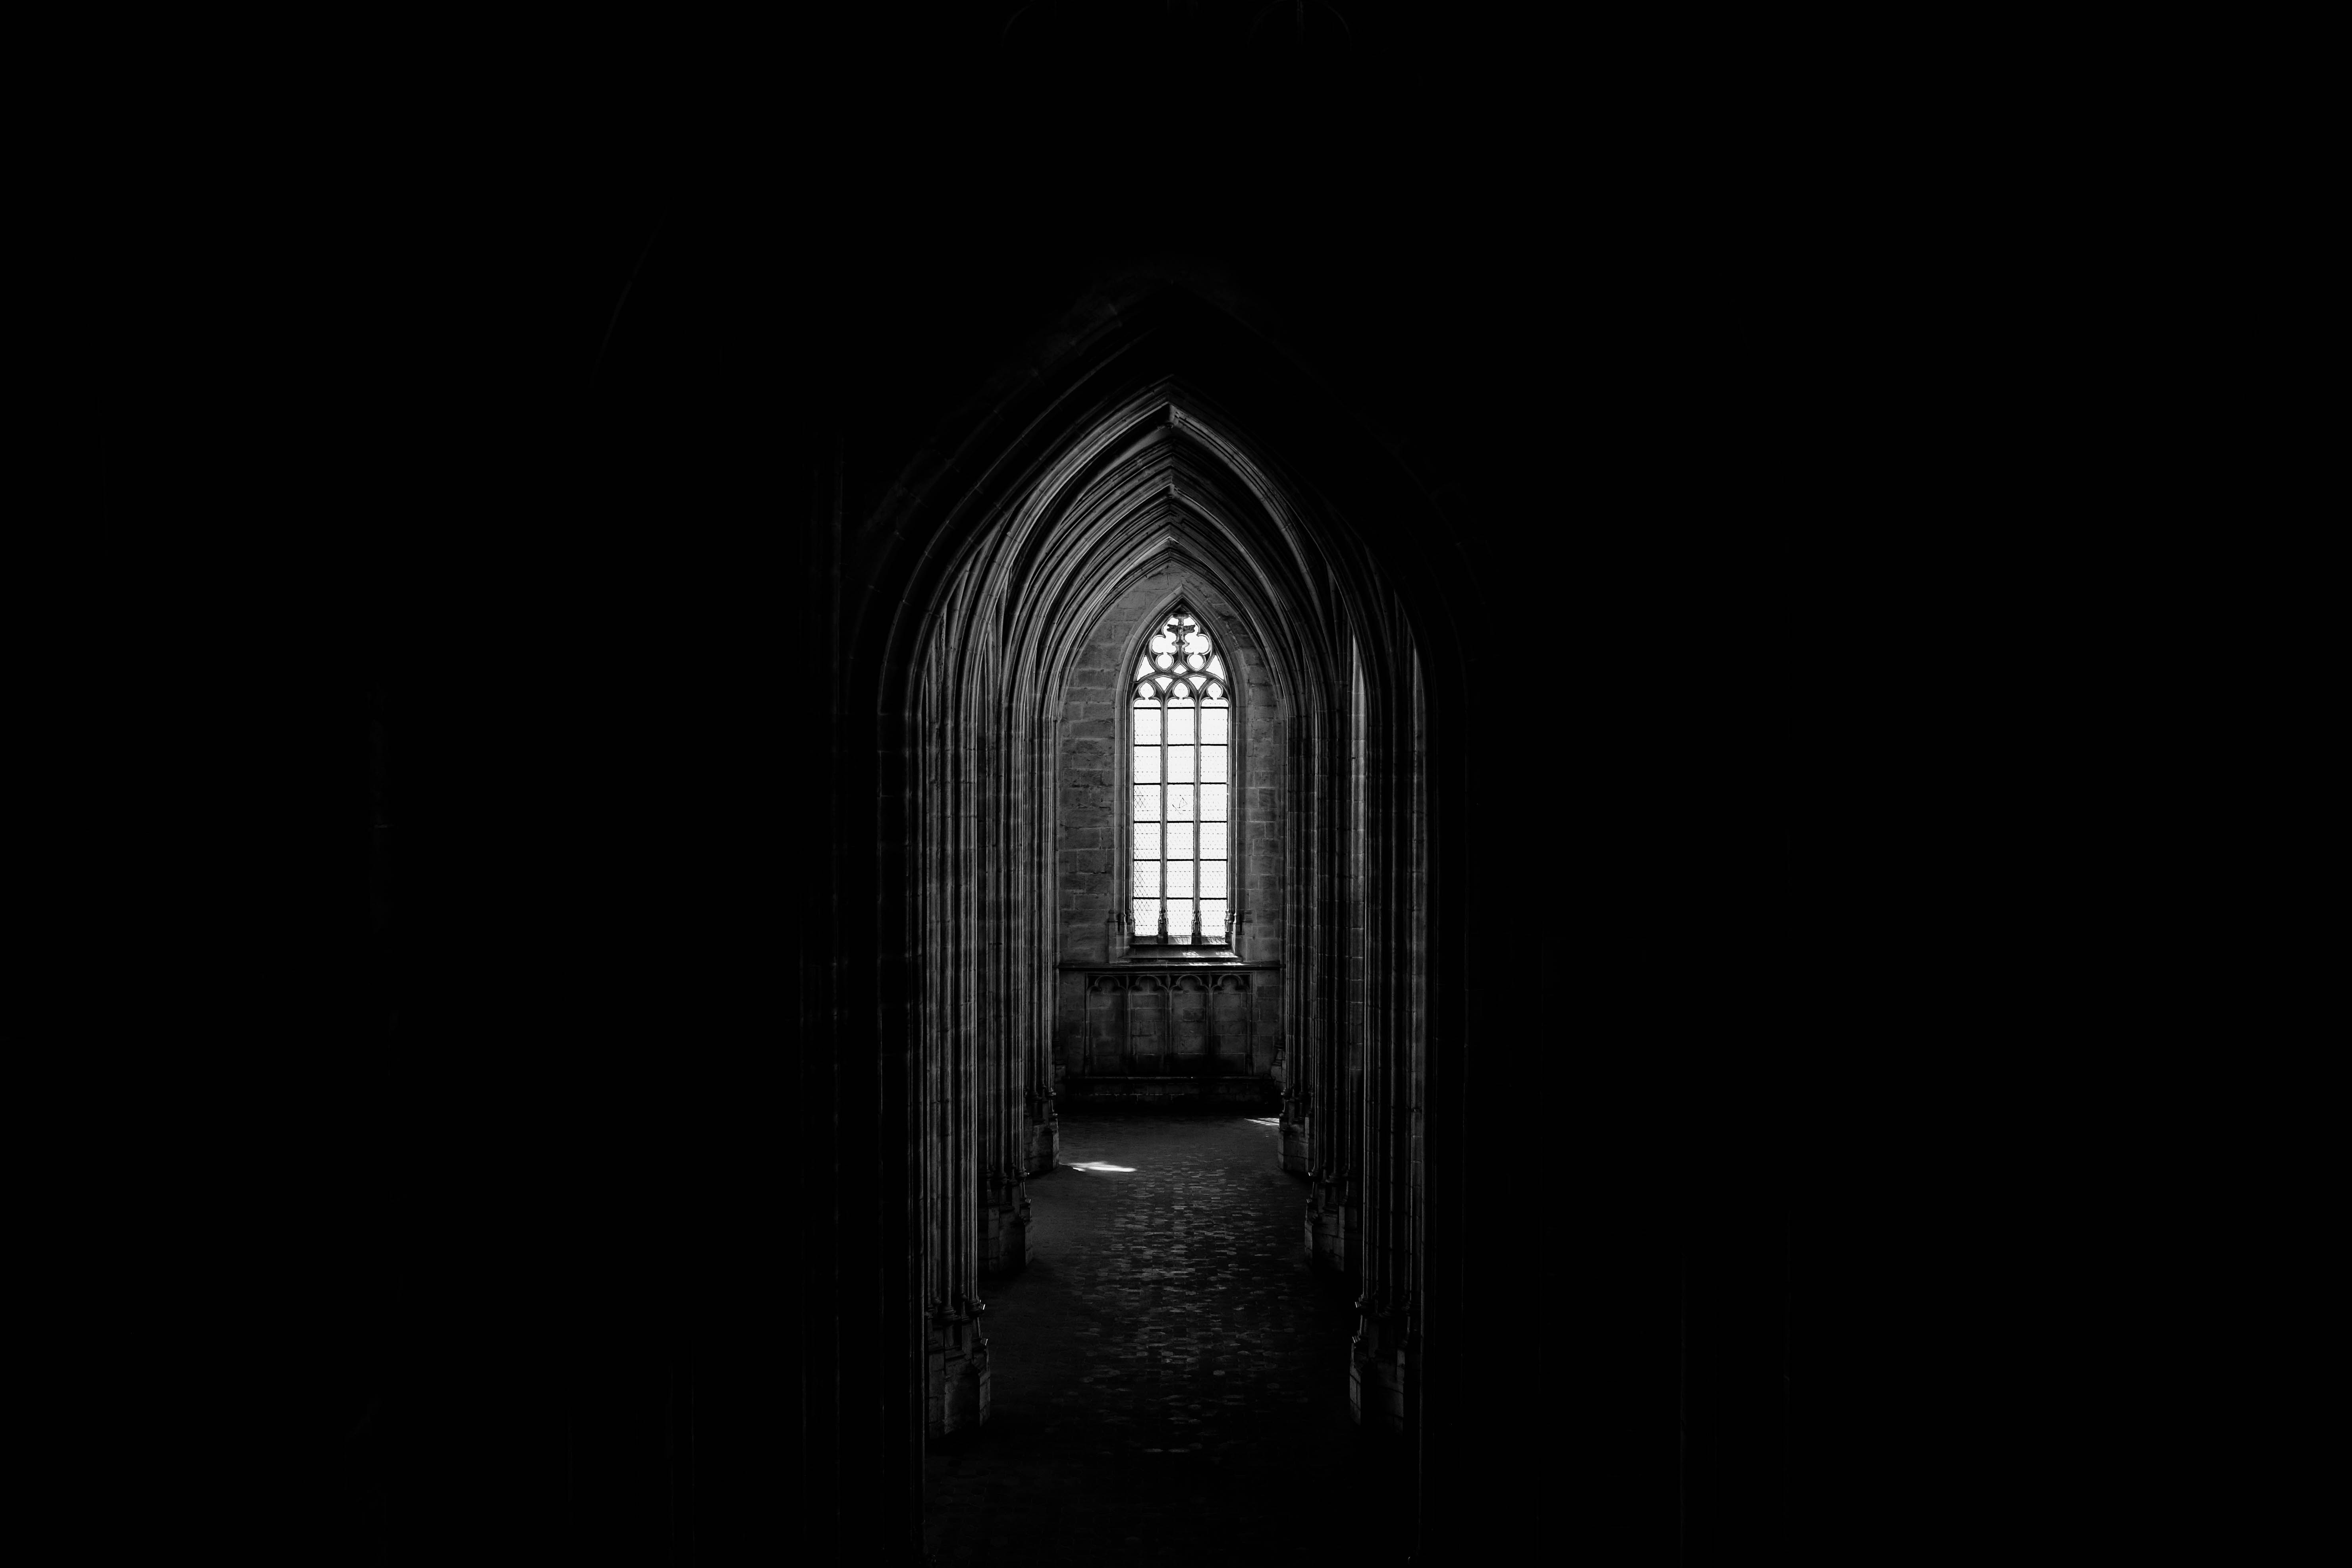 135130 download wallpaper Corridor, Dark, Window, Arch, Architecture screensavers and pictures for free